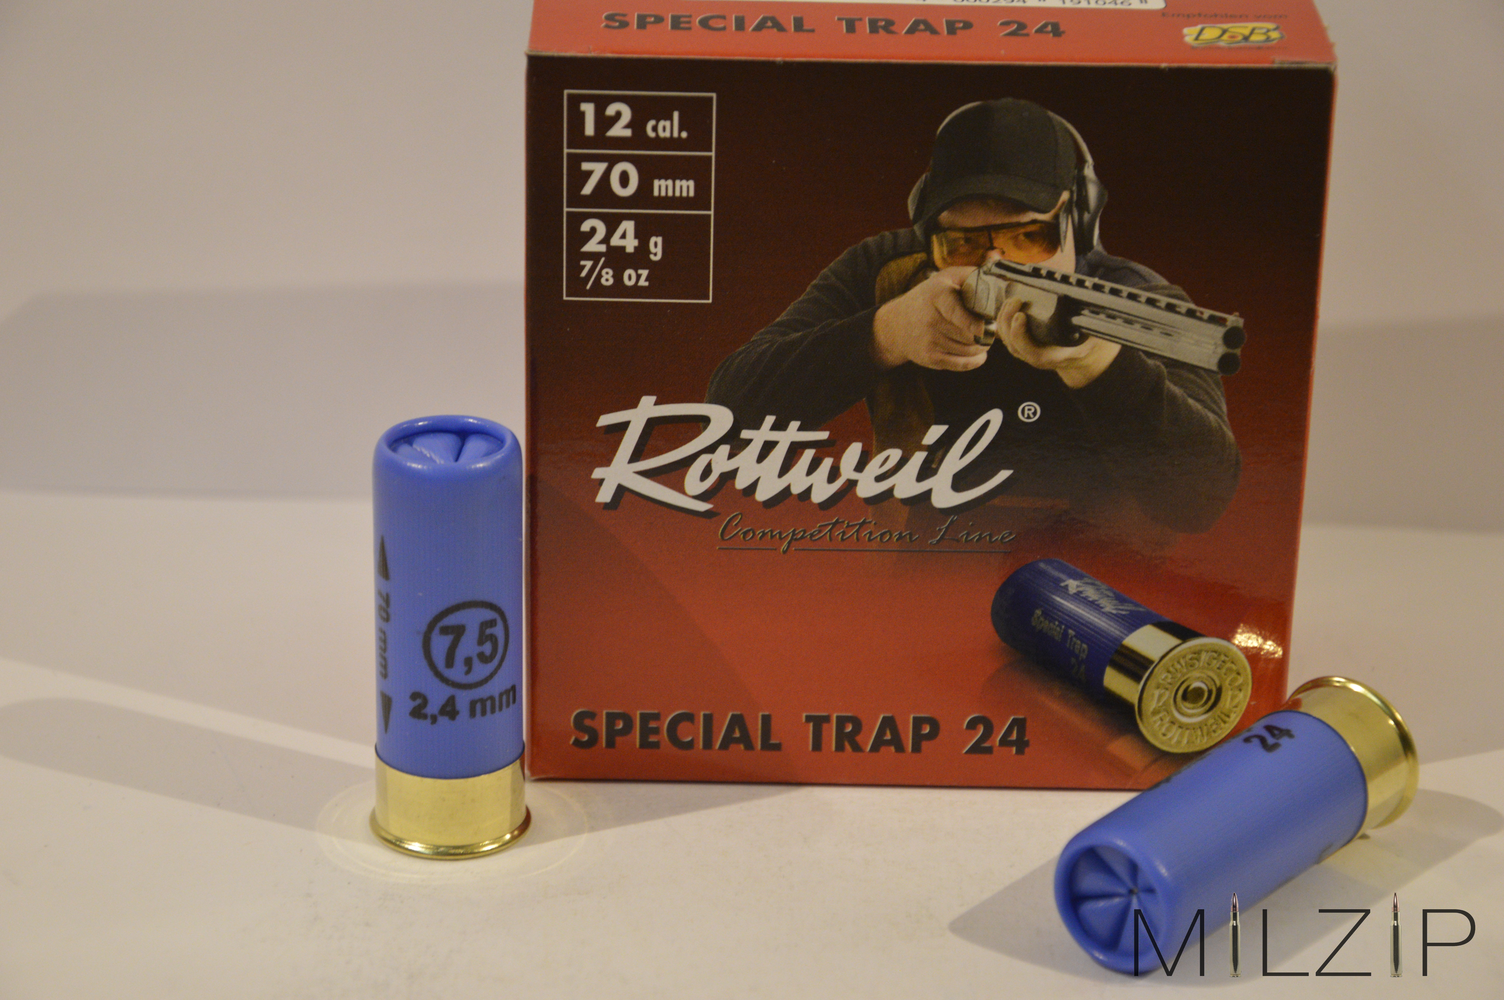 Rottweil Special Trap 24 12/70 2,4mm 24g